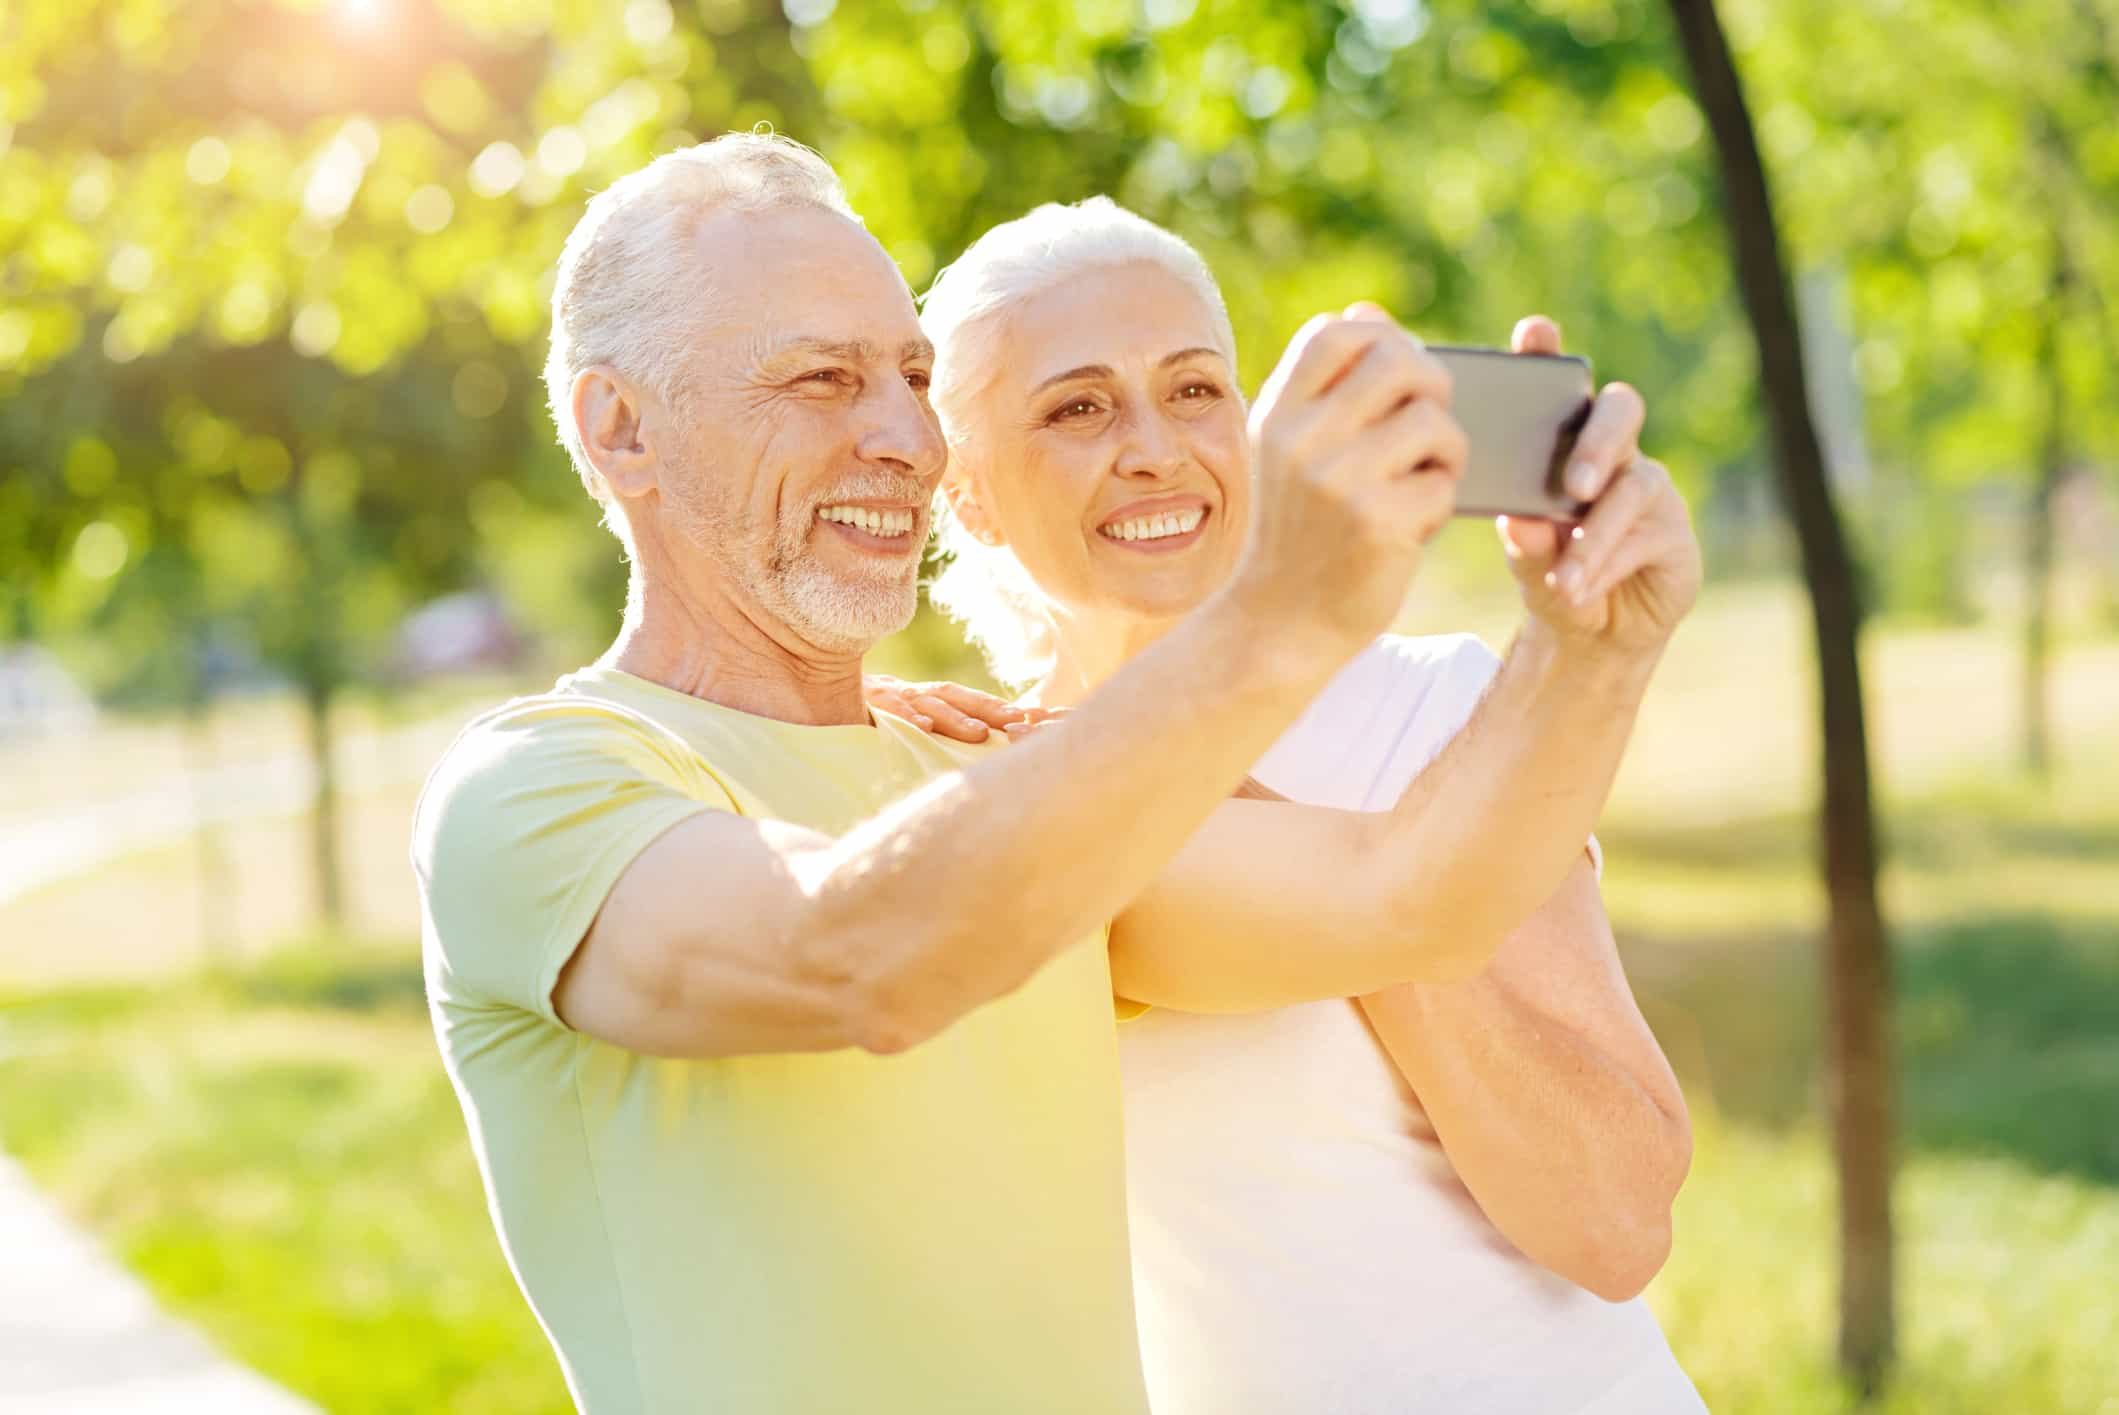 Easing the strain for the sandwich generation